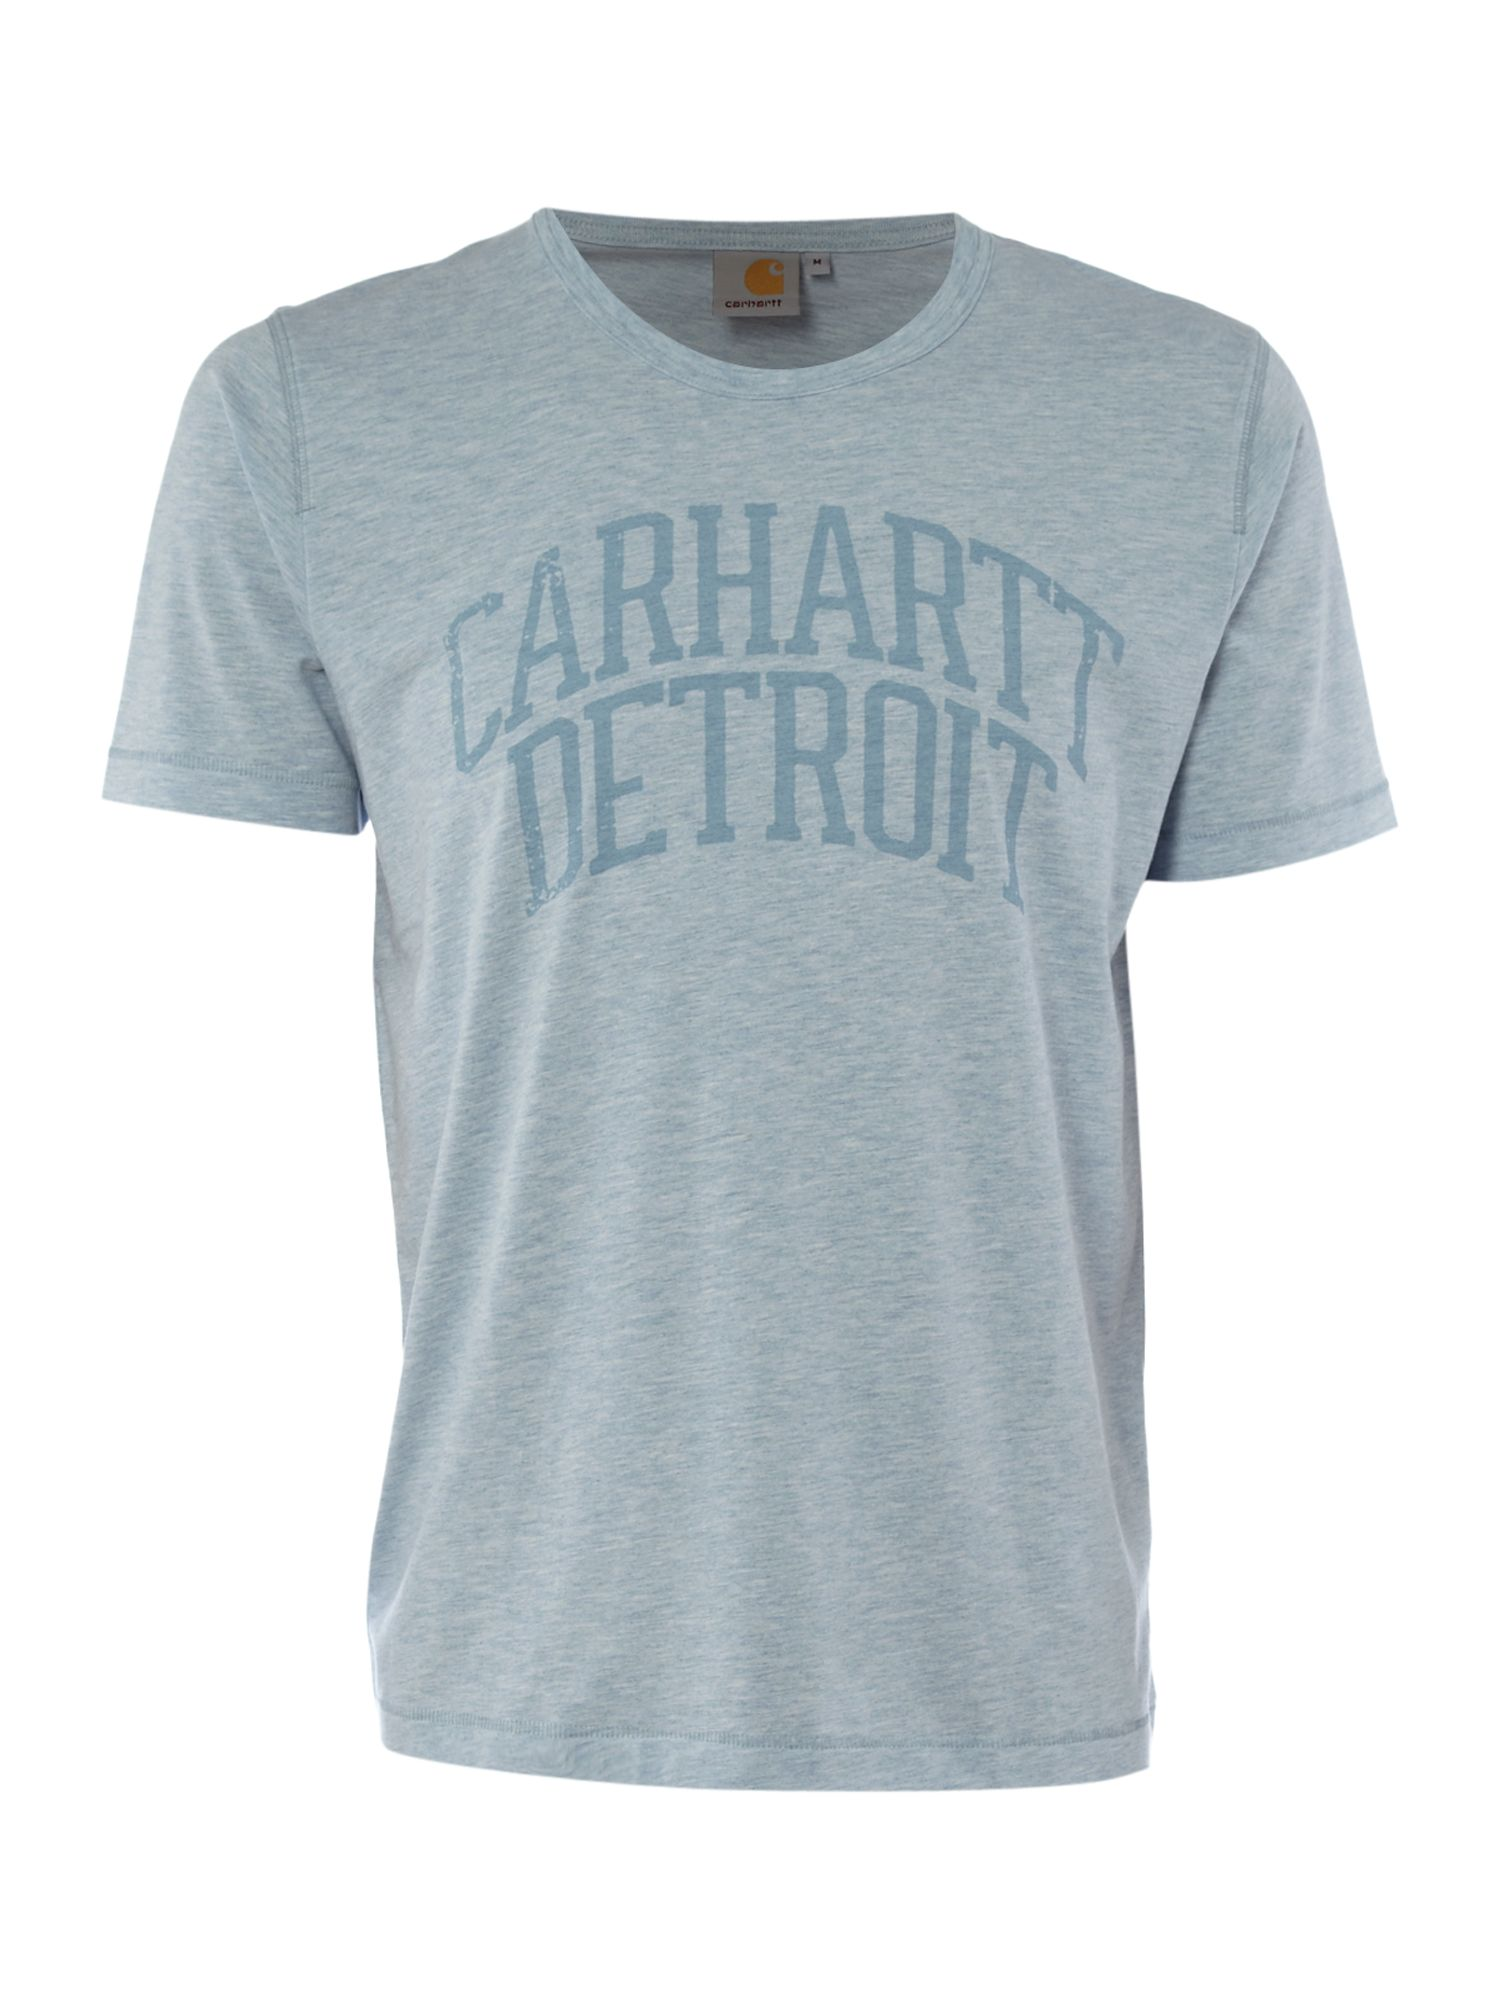 Carhartt Detroit T-shirt - Blue S,S,XL,XL product image